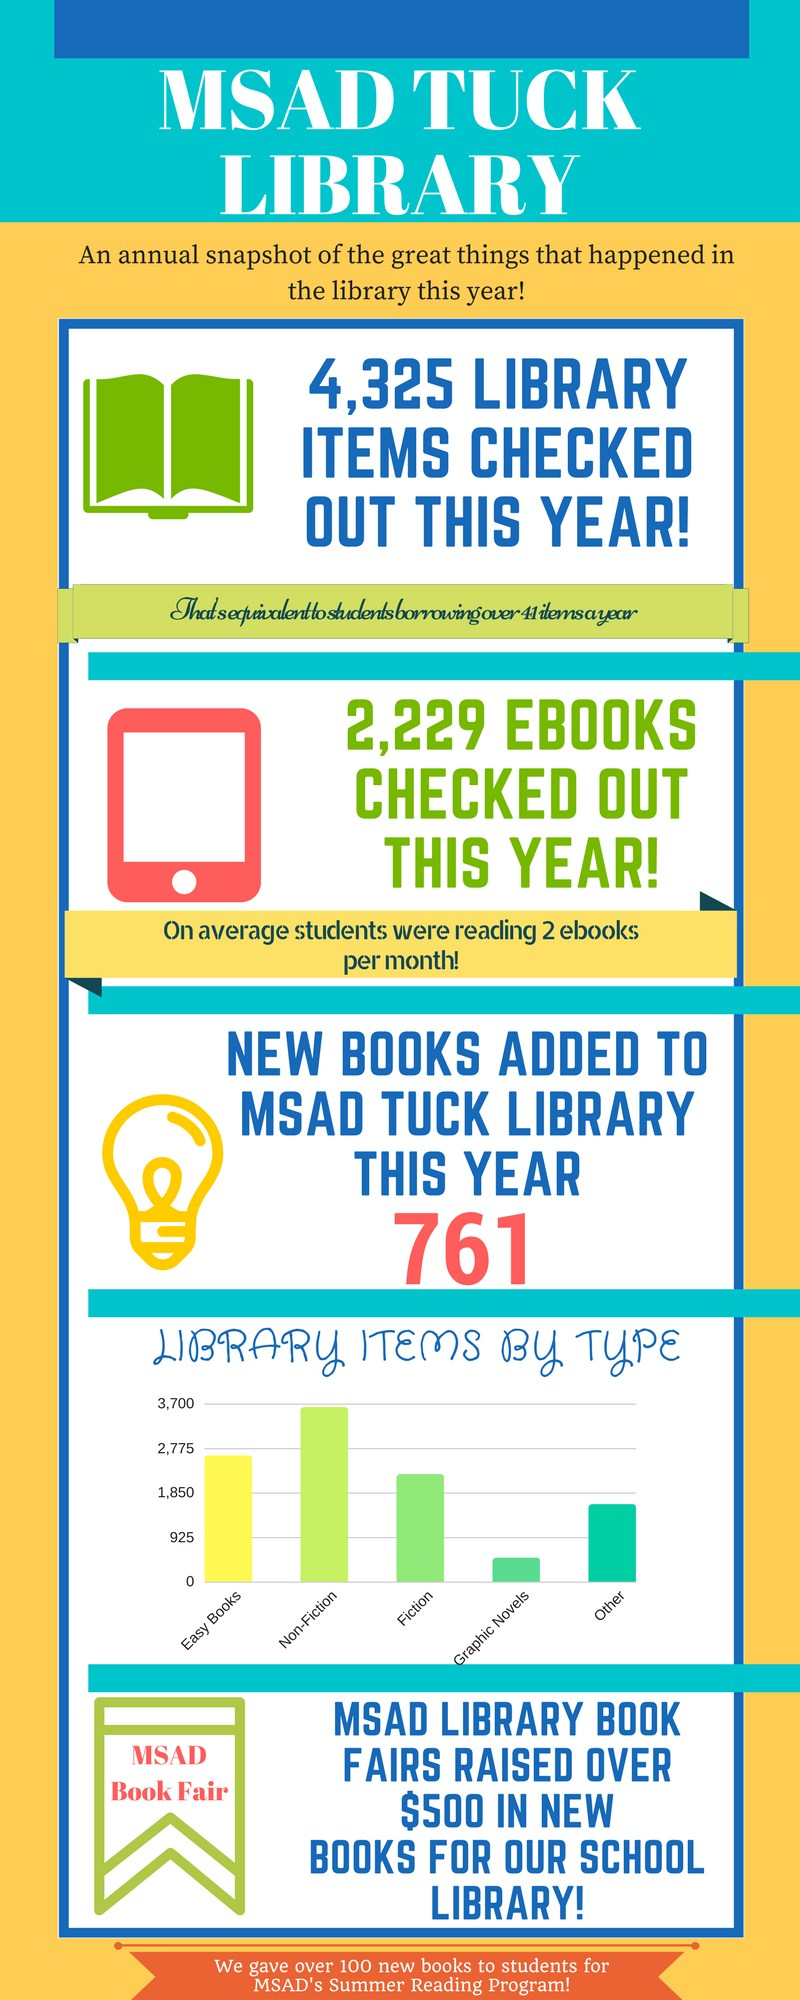 Infographic: MSAD Tuck Library an annual snapshot of the great things that happened in the library this year.  4325 library items checked out that equivalent to to students borrowing over 41 items per year. 2229 ebooks checked out this year on average students were reading 2 ebooks per month. New books added to Tuck Library this year, 761. Graph showing library items by type: easy books, over 2000, non fiction over 3000, fiction over 1000 and other over 900. MSAD's Library book fairs raised over $500 in new books for our school library!  We gave away over 100 new books to students for our summer reading program!